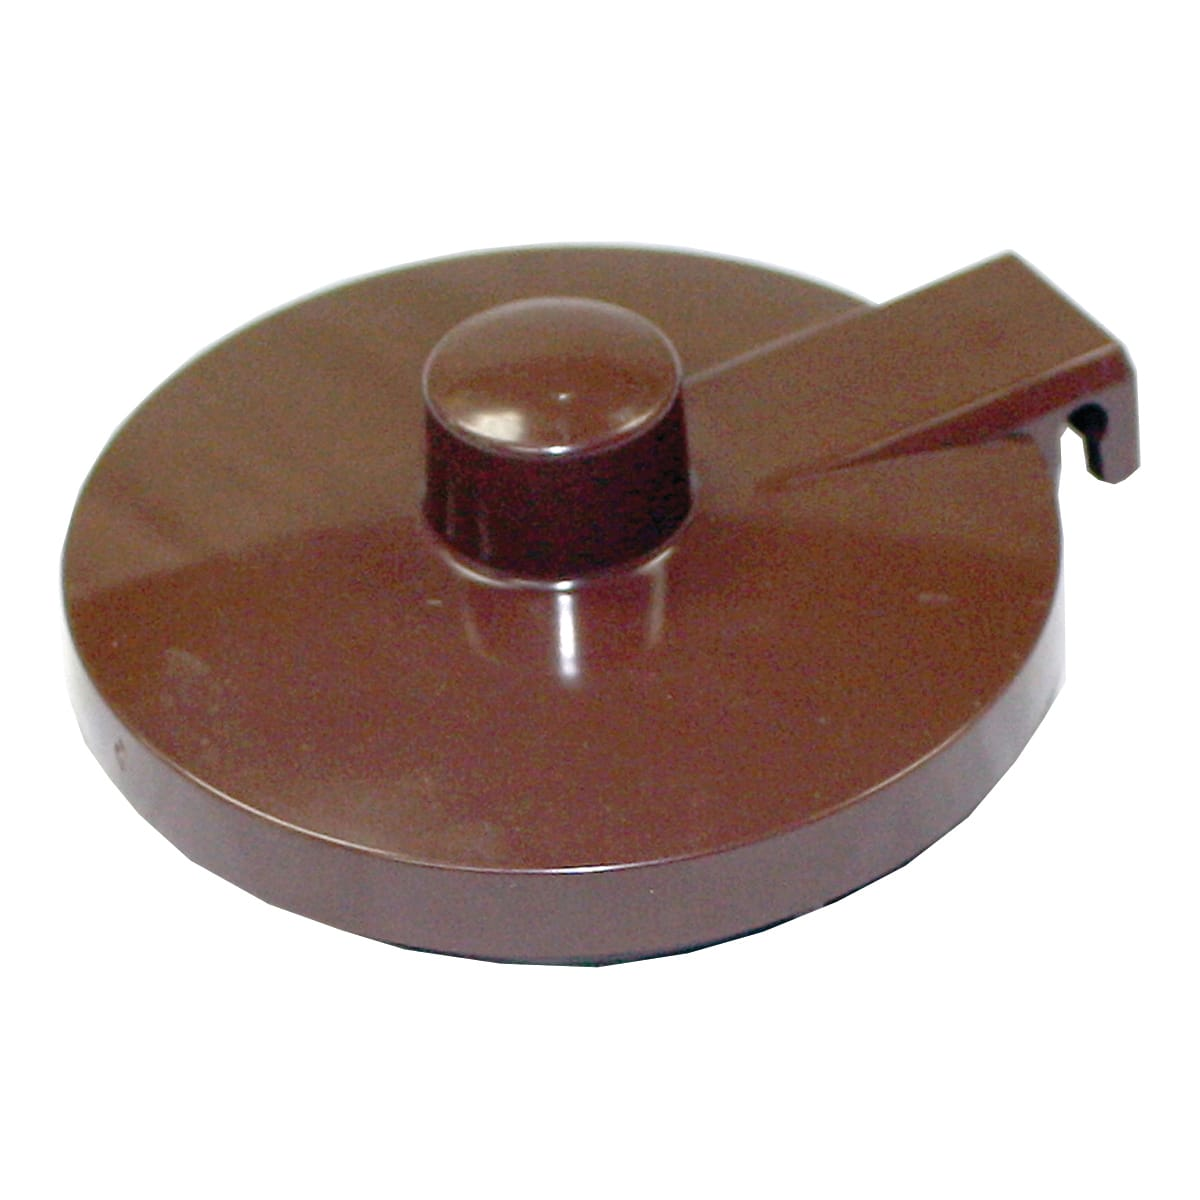 Service Ideas TPLBR Replacement Lid For TS612 Teapot, Brown